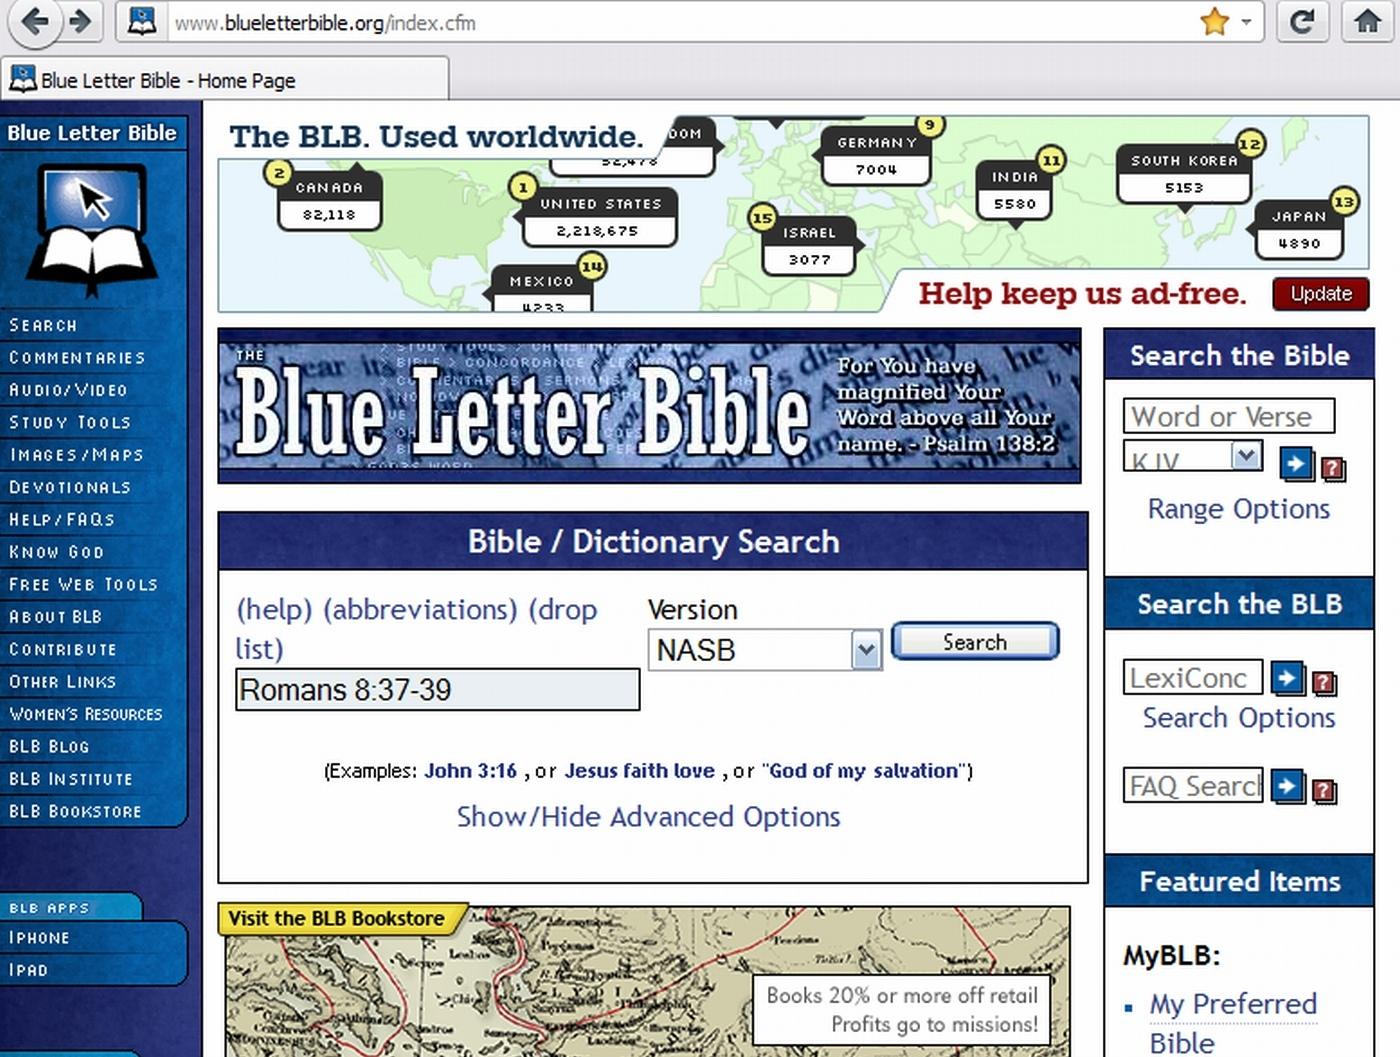 blue letter bible home page blue letter bible 20653 | BlueLetterBible Homepage02